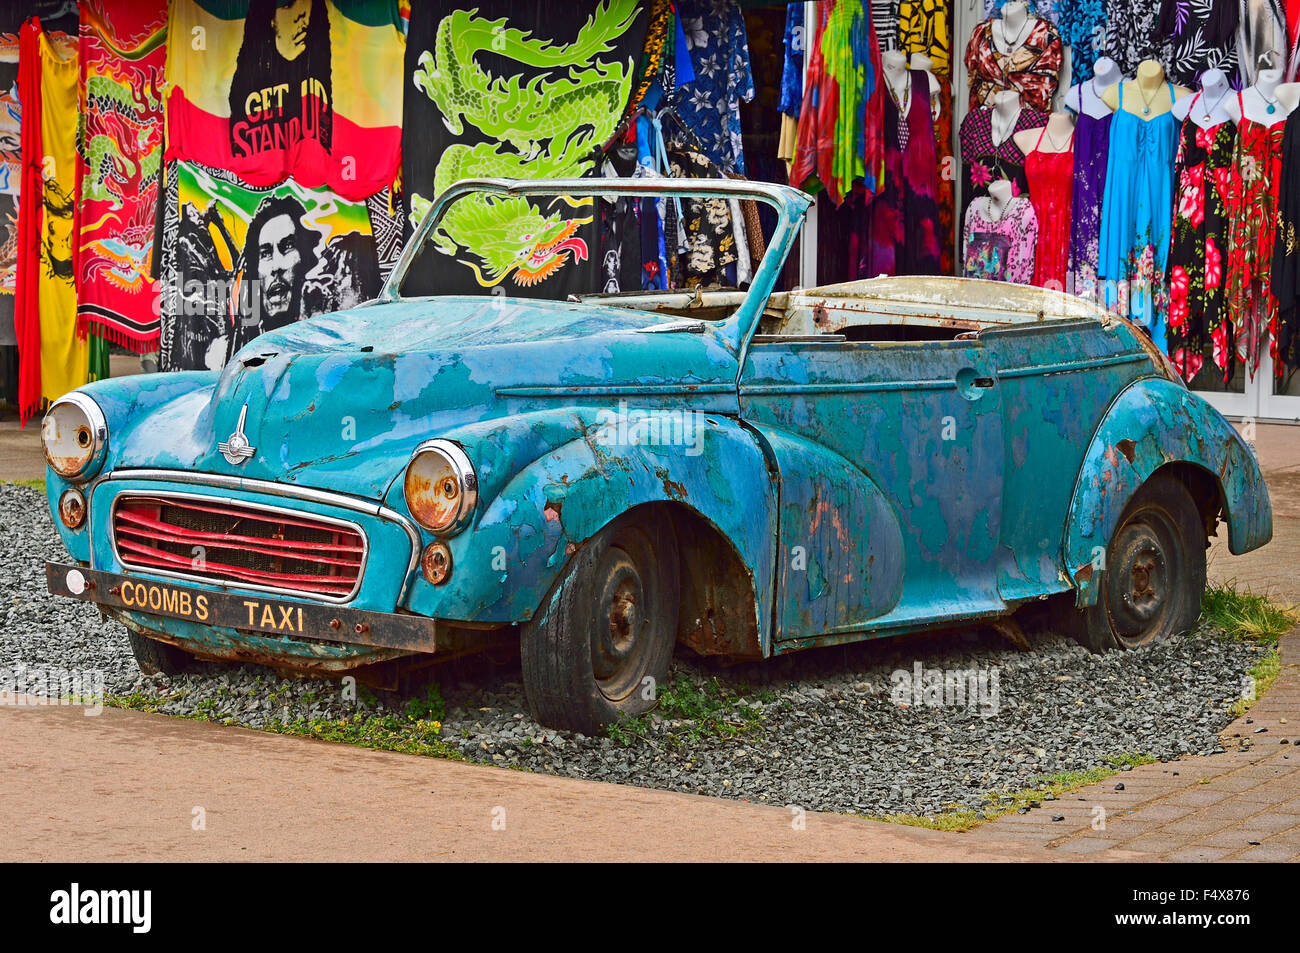 An old car body against a colorful background of ladies wear for ...